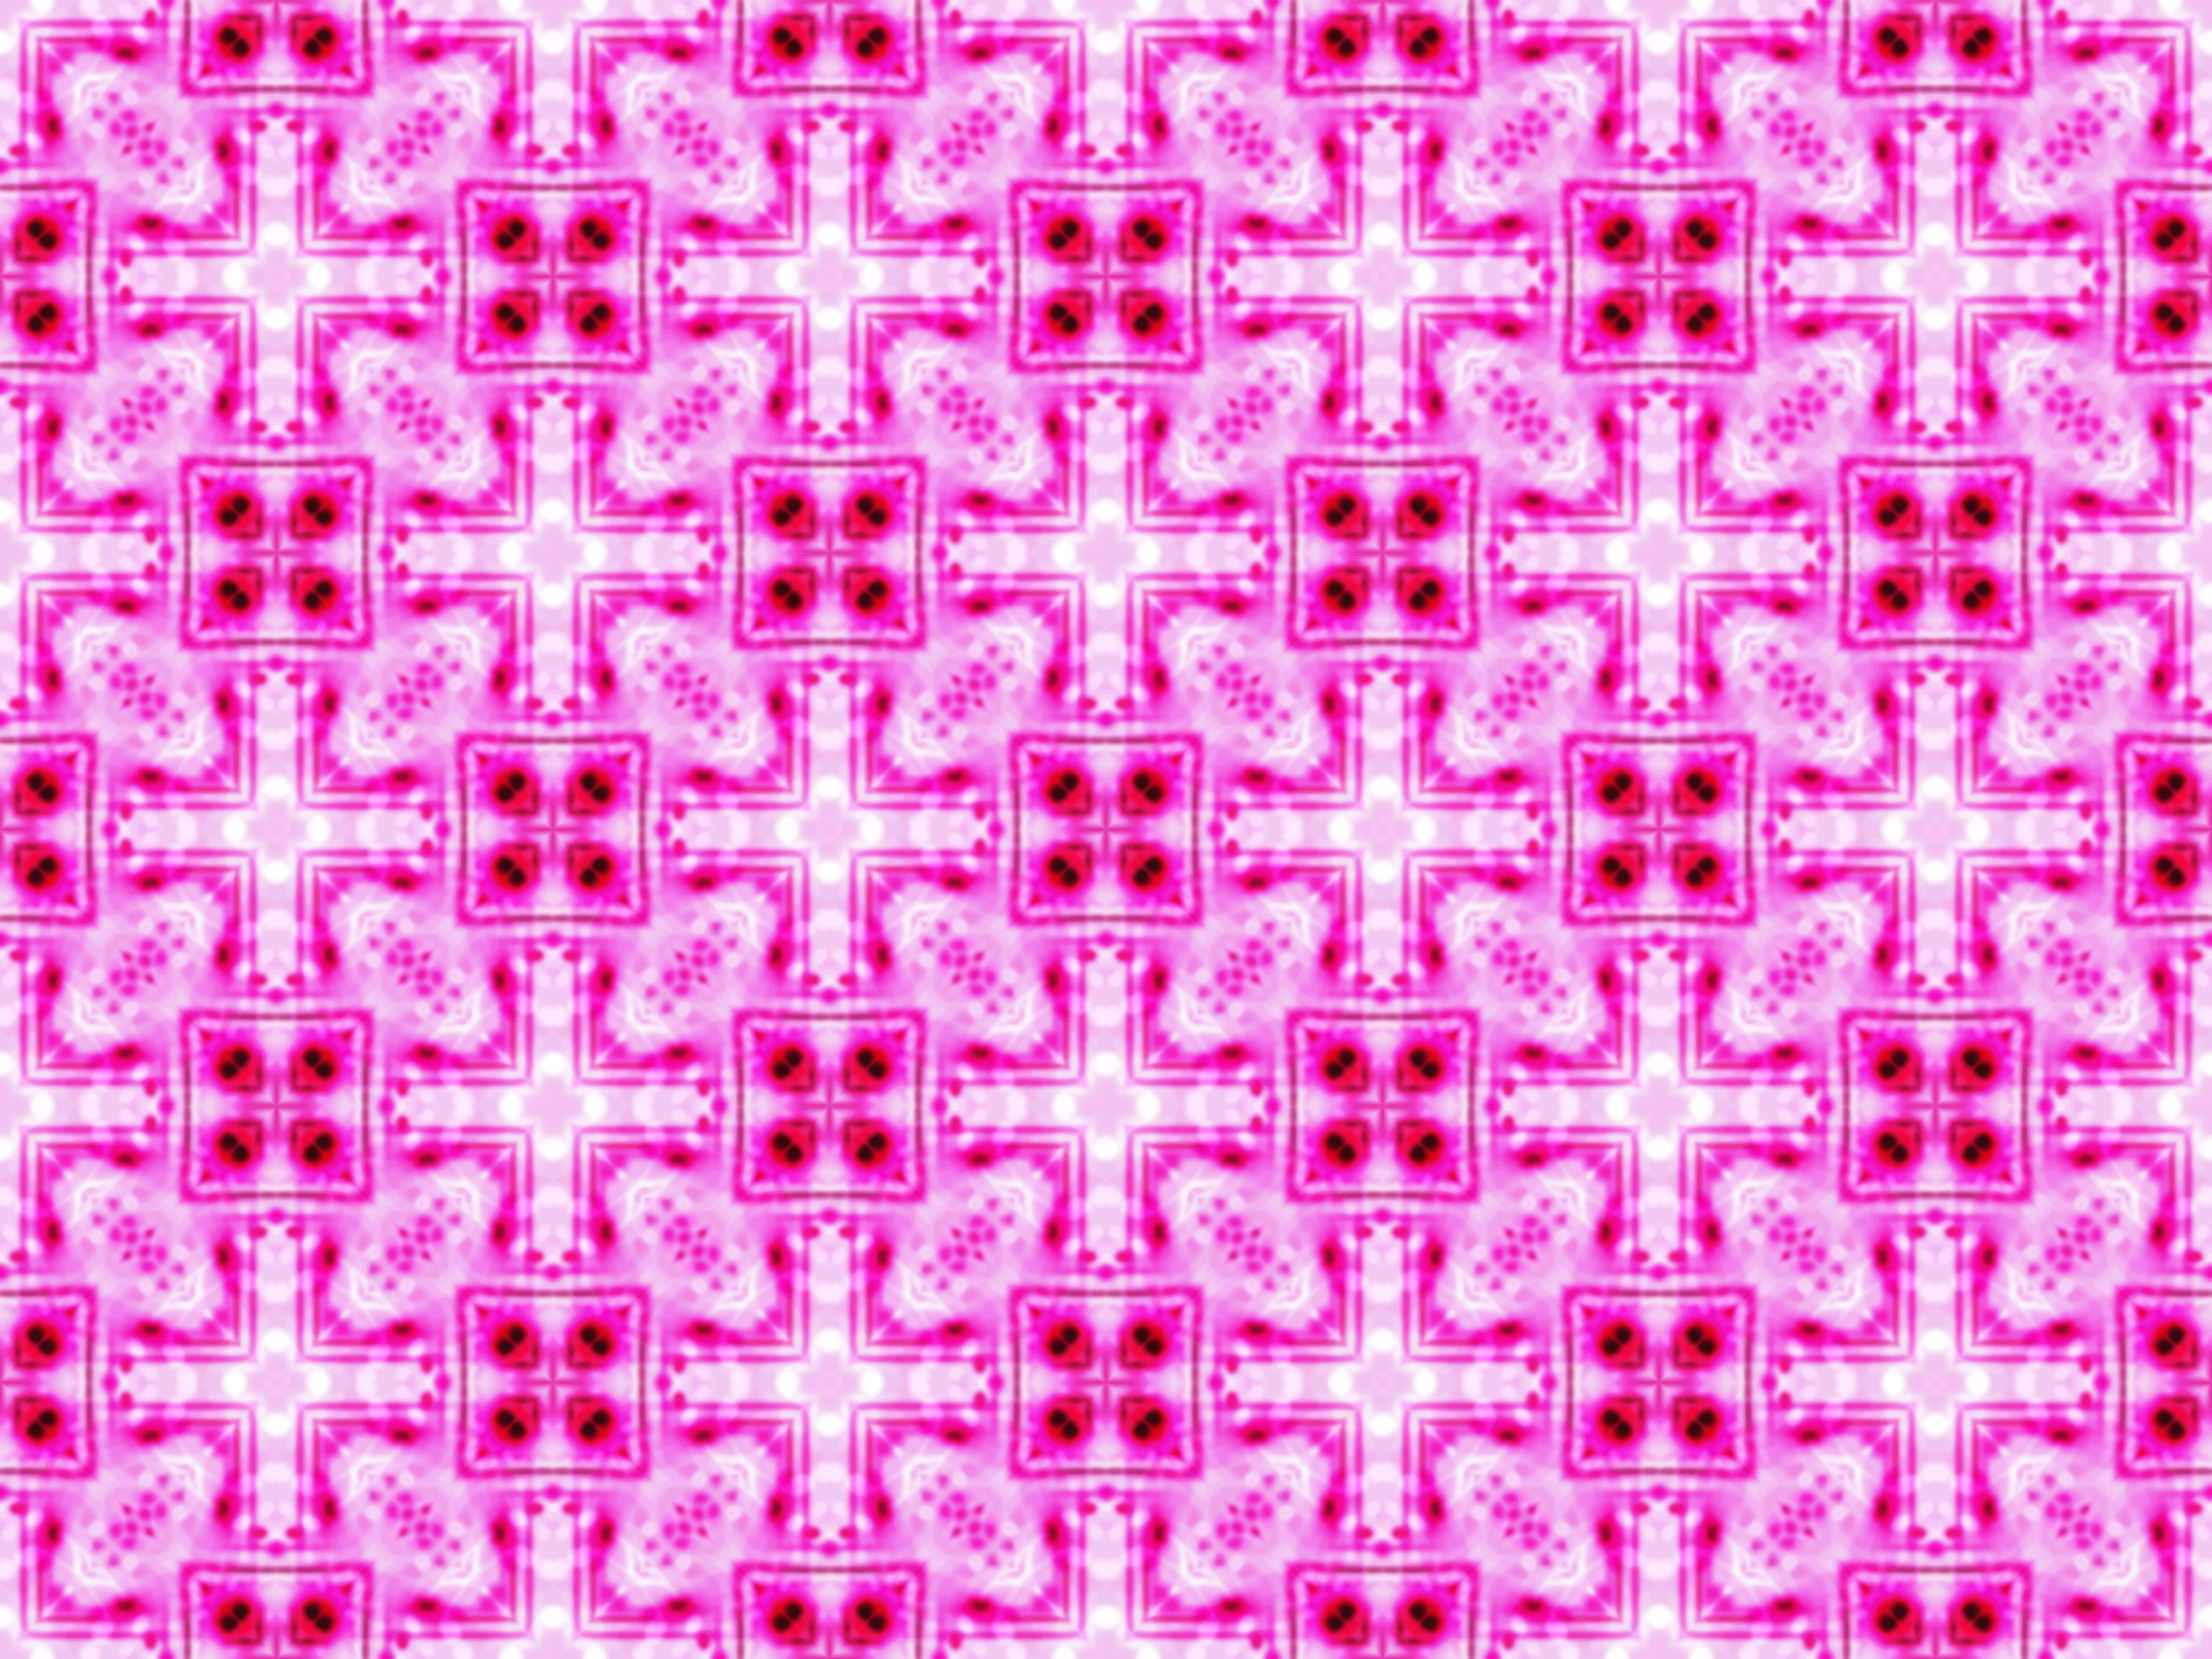 Background pattern 234 (colour 4) by Firkin